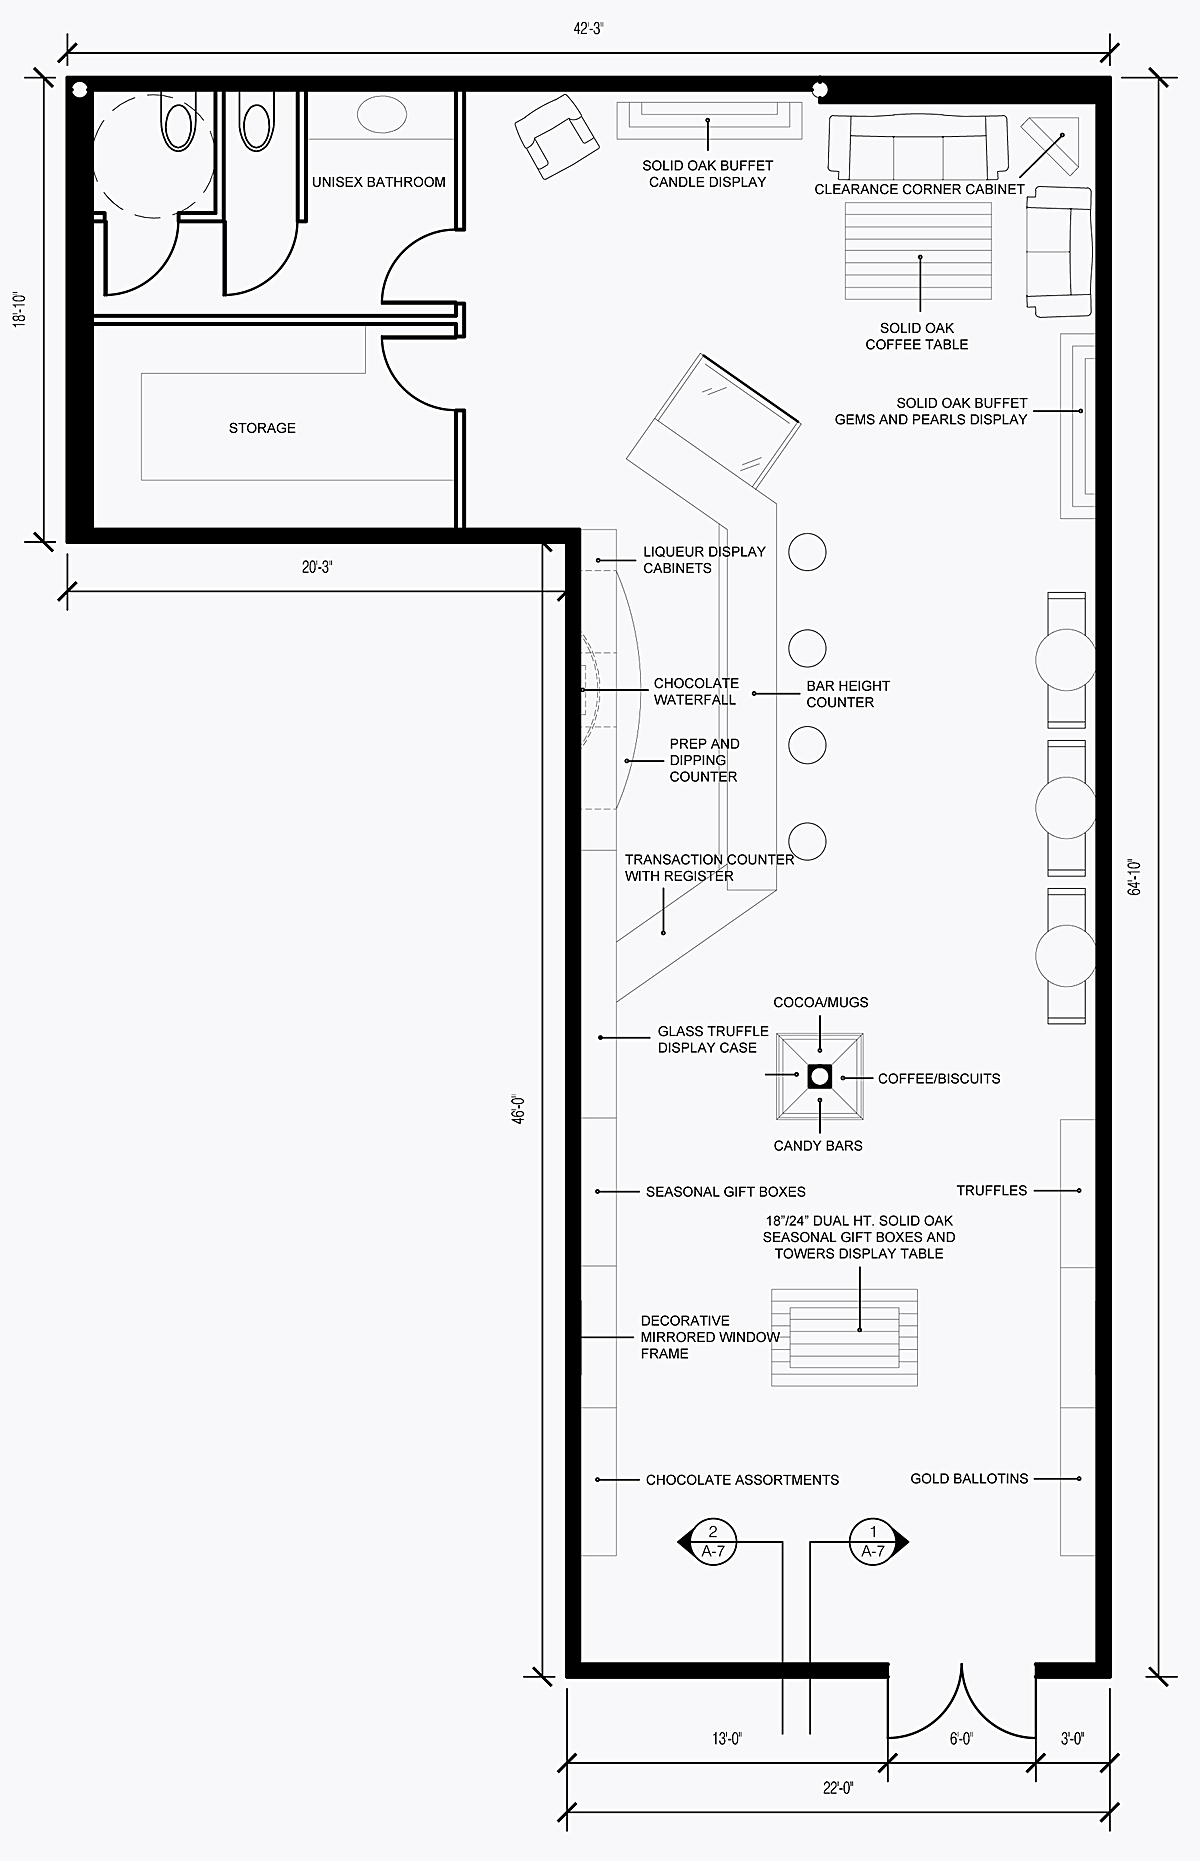 Retail store layout best layout room for Retail store floor plan